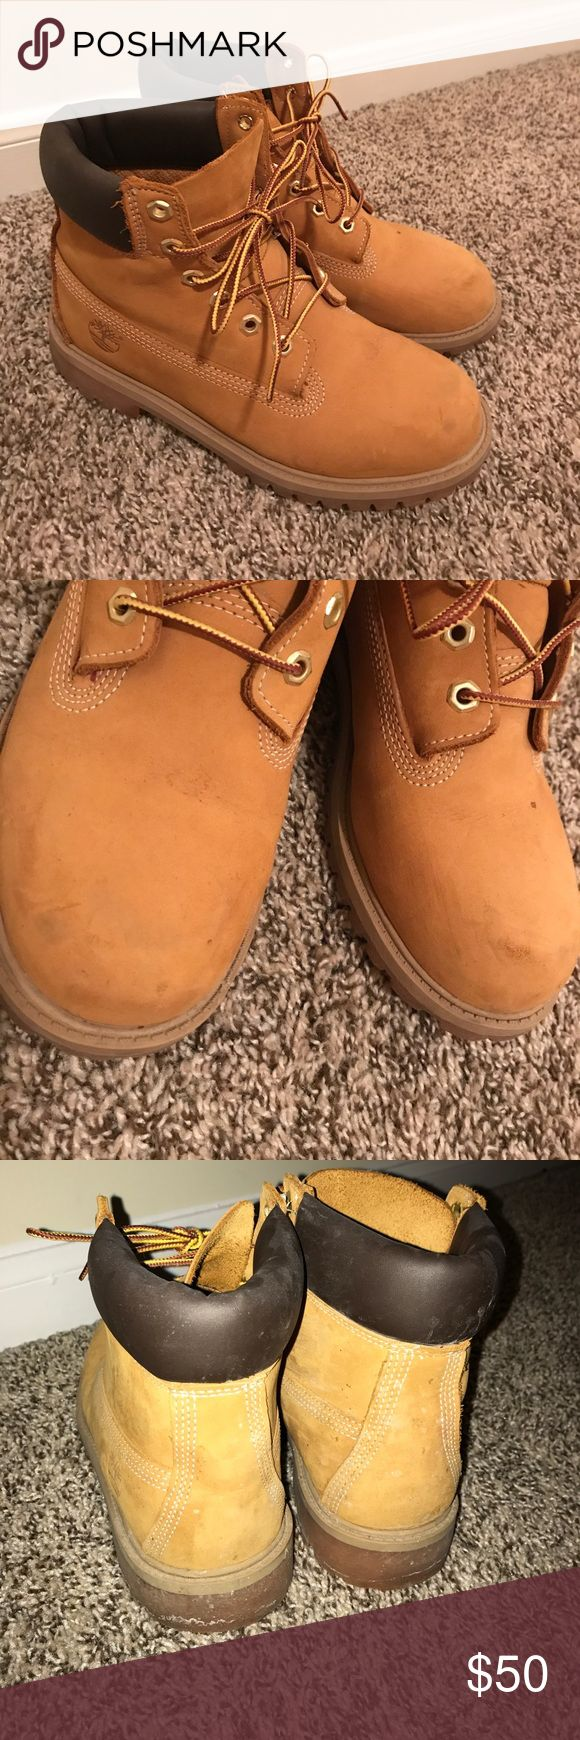 Classic Butters Timberland Boots Kids size 6, women's size 8! Barely worn, light dirt that's easily cleaned off. Worn lightly for an event so I no longer need them. Let me know if you have any more questions! Price is firm for their condition. Timberland Shoes Combat & Moto Boots